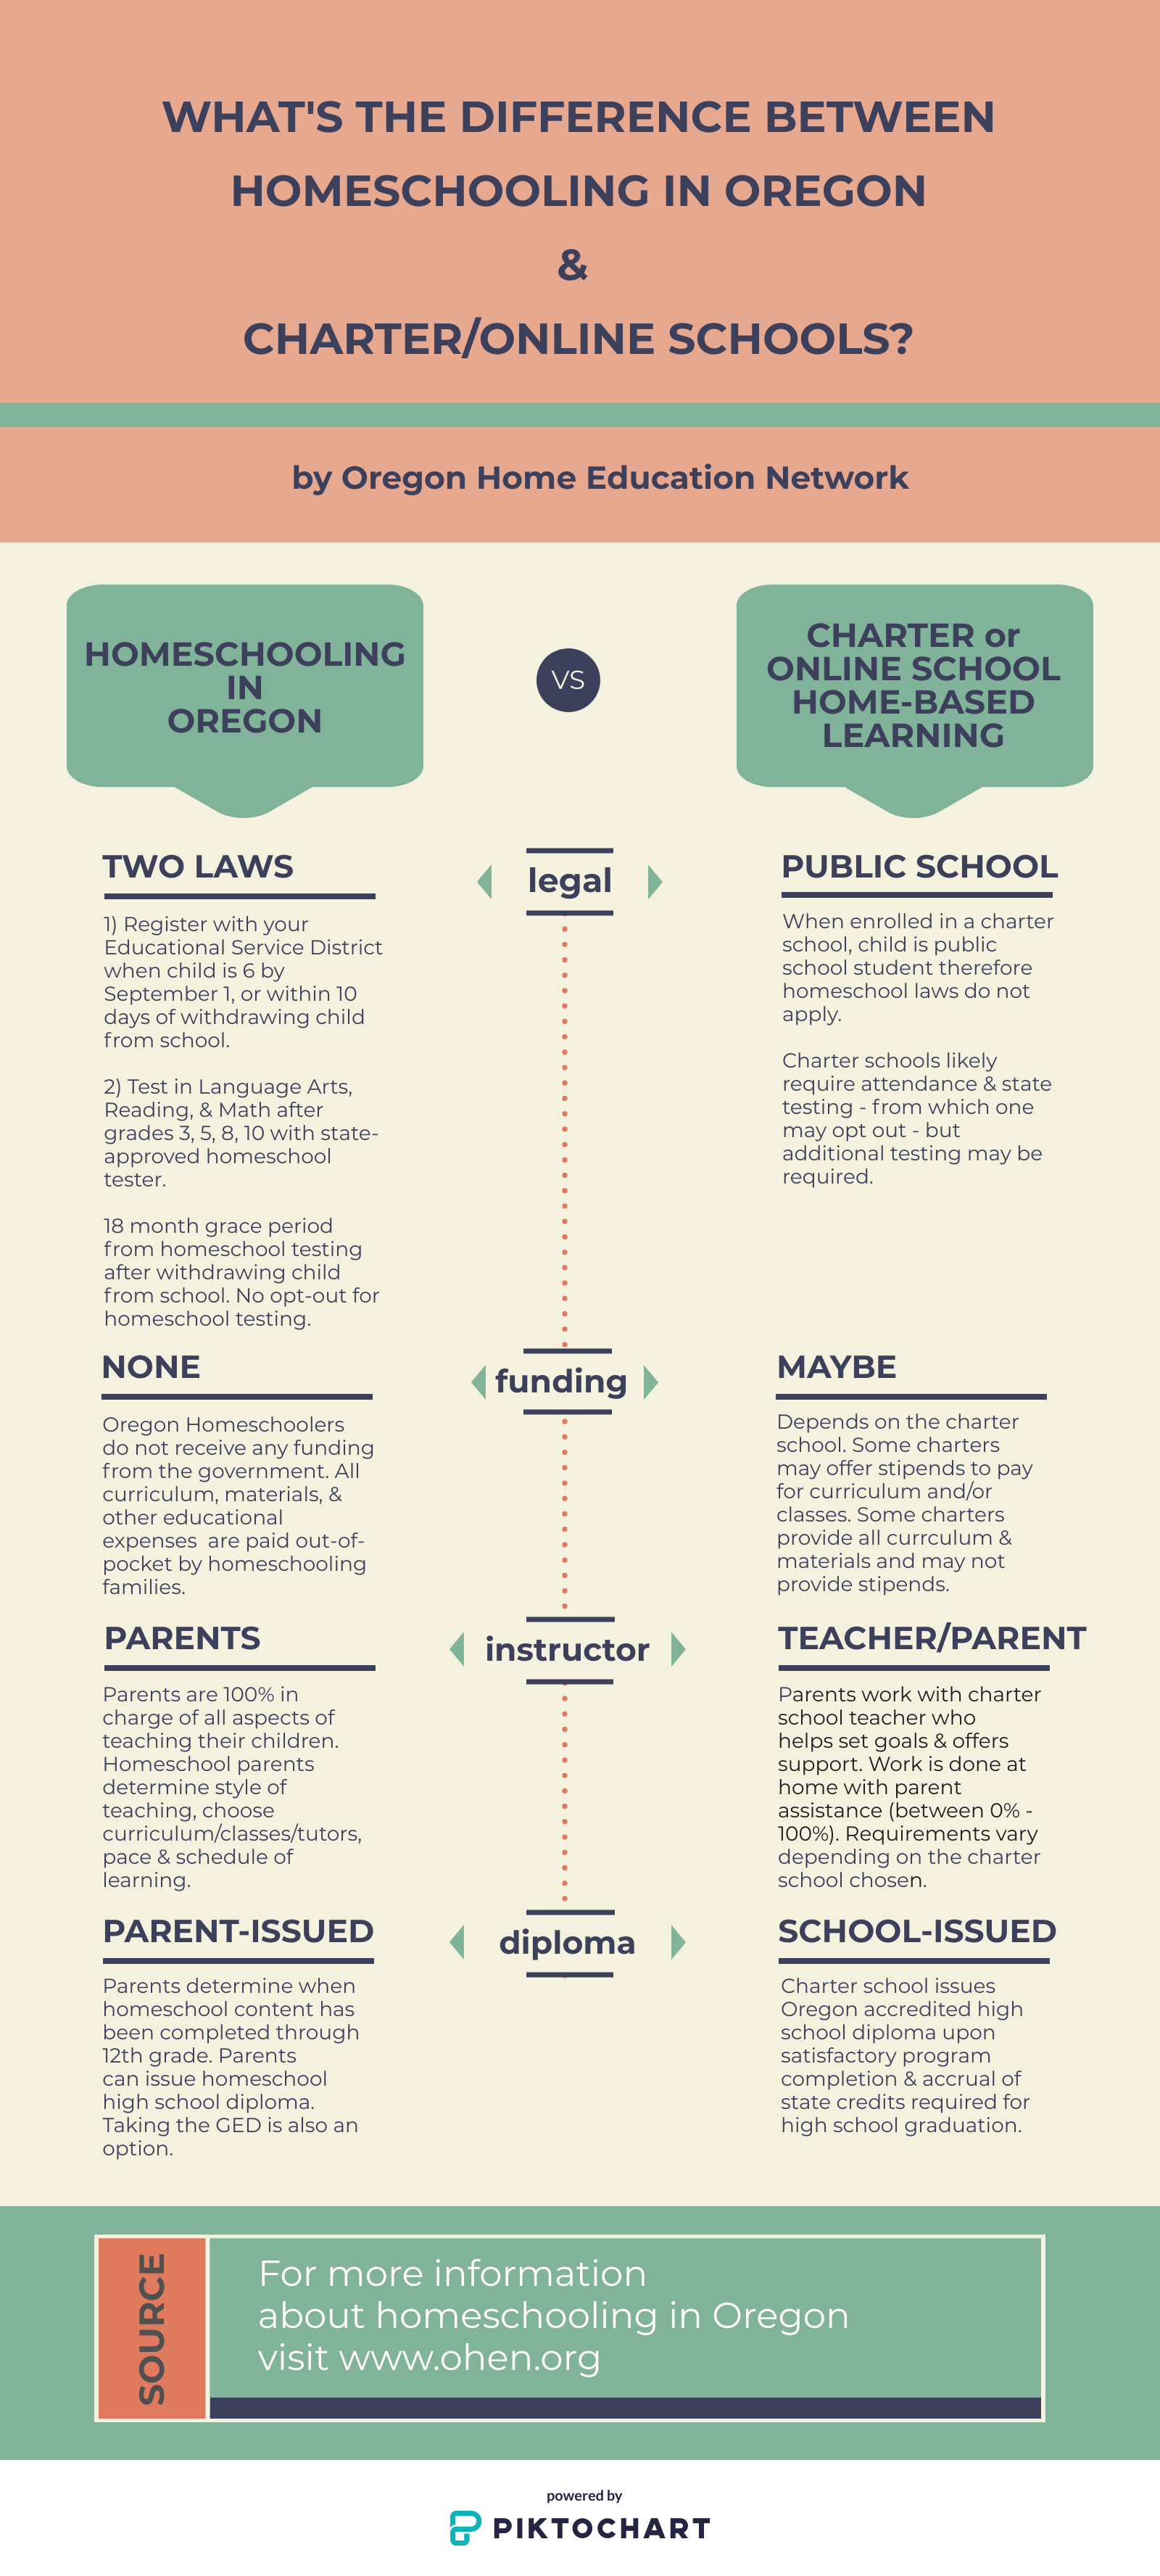 infographic about homeschooling in Oregon vs charter/online schools.